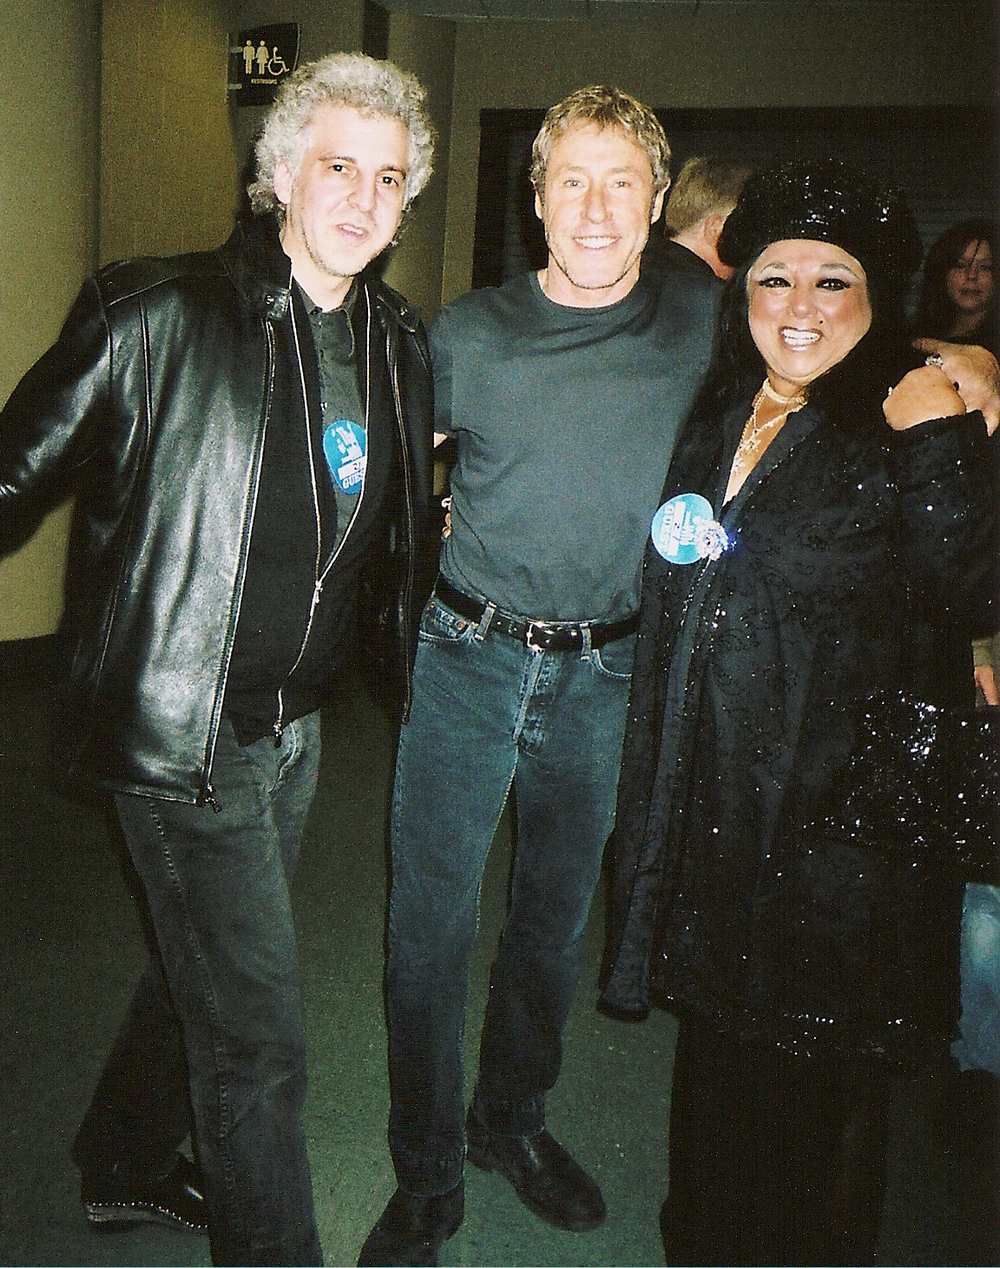 Magic Marc, Roger Daltrey & Marilyn Percansky  Backstage at Xcel Energy Center / St. Paul, Minnesota / December 8, 2006